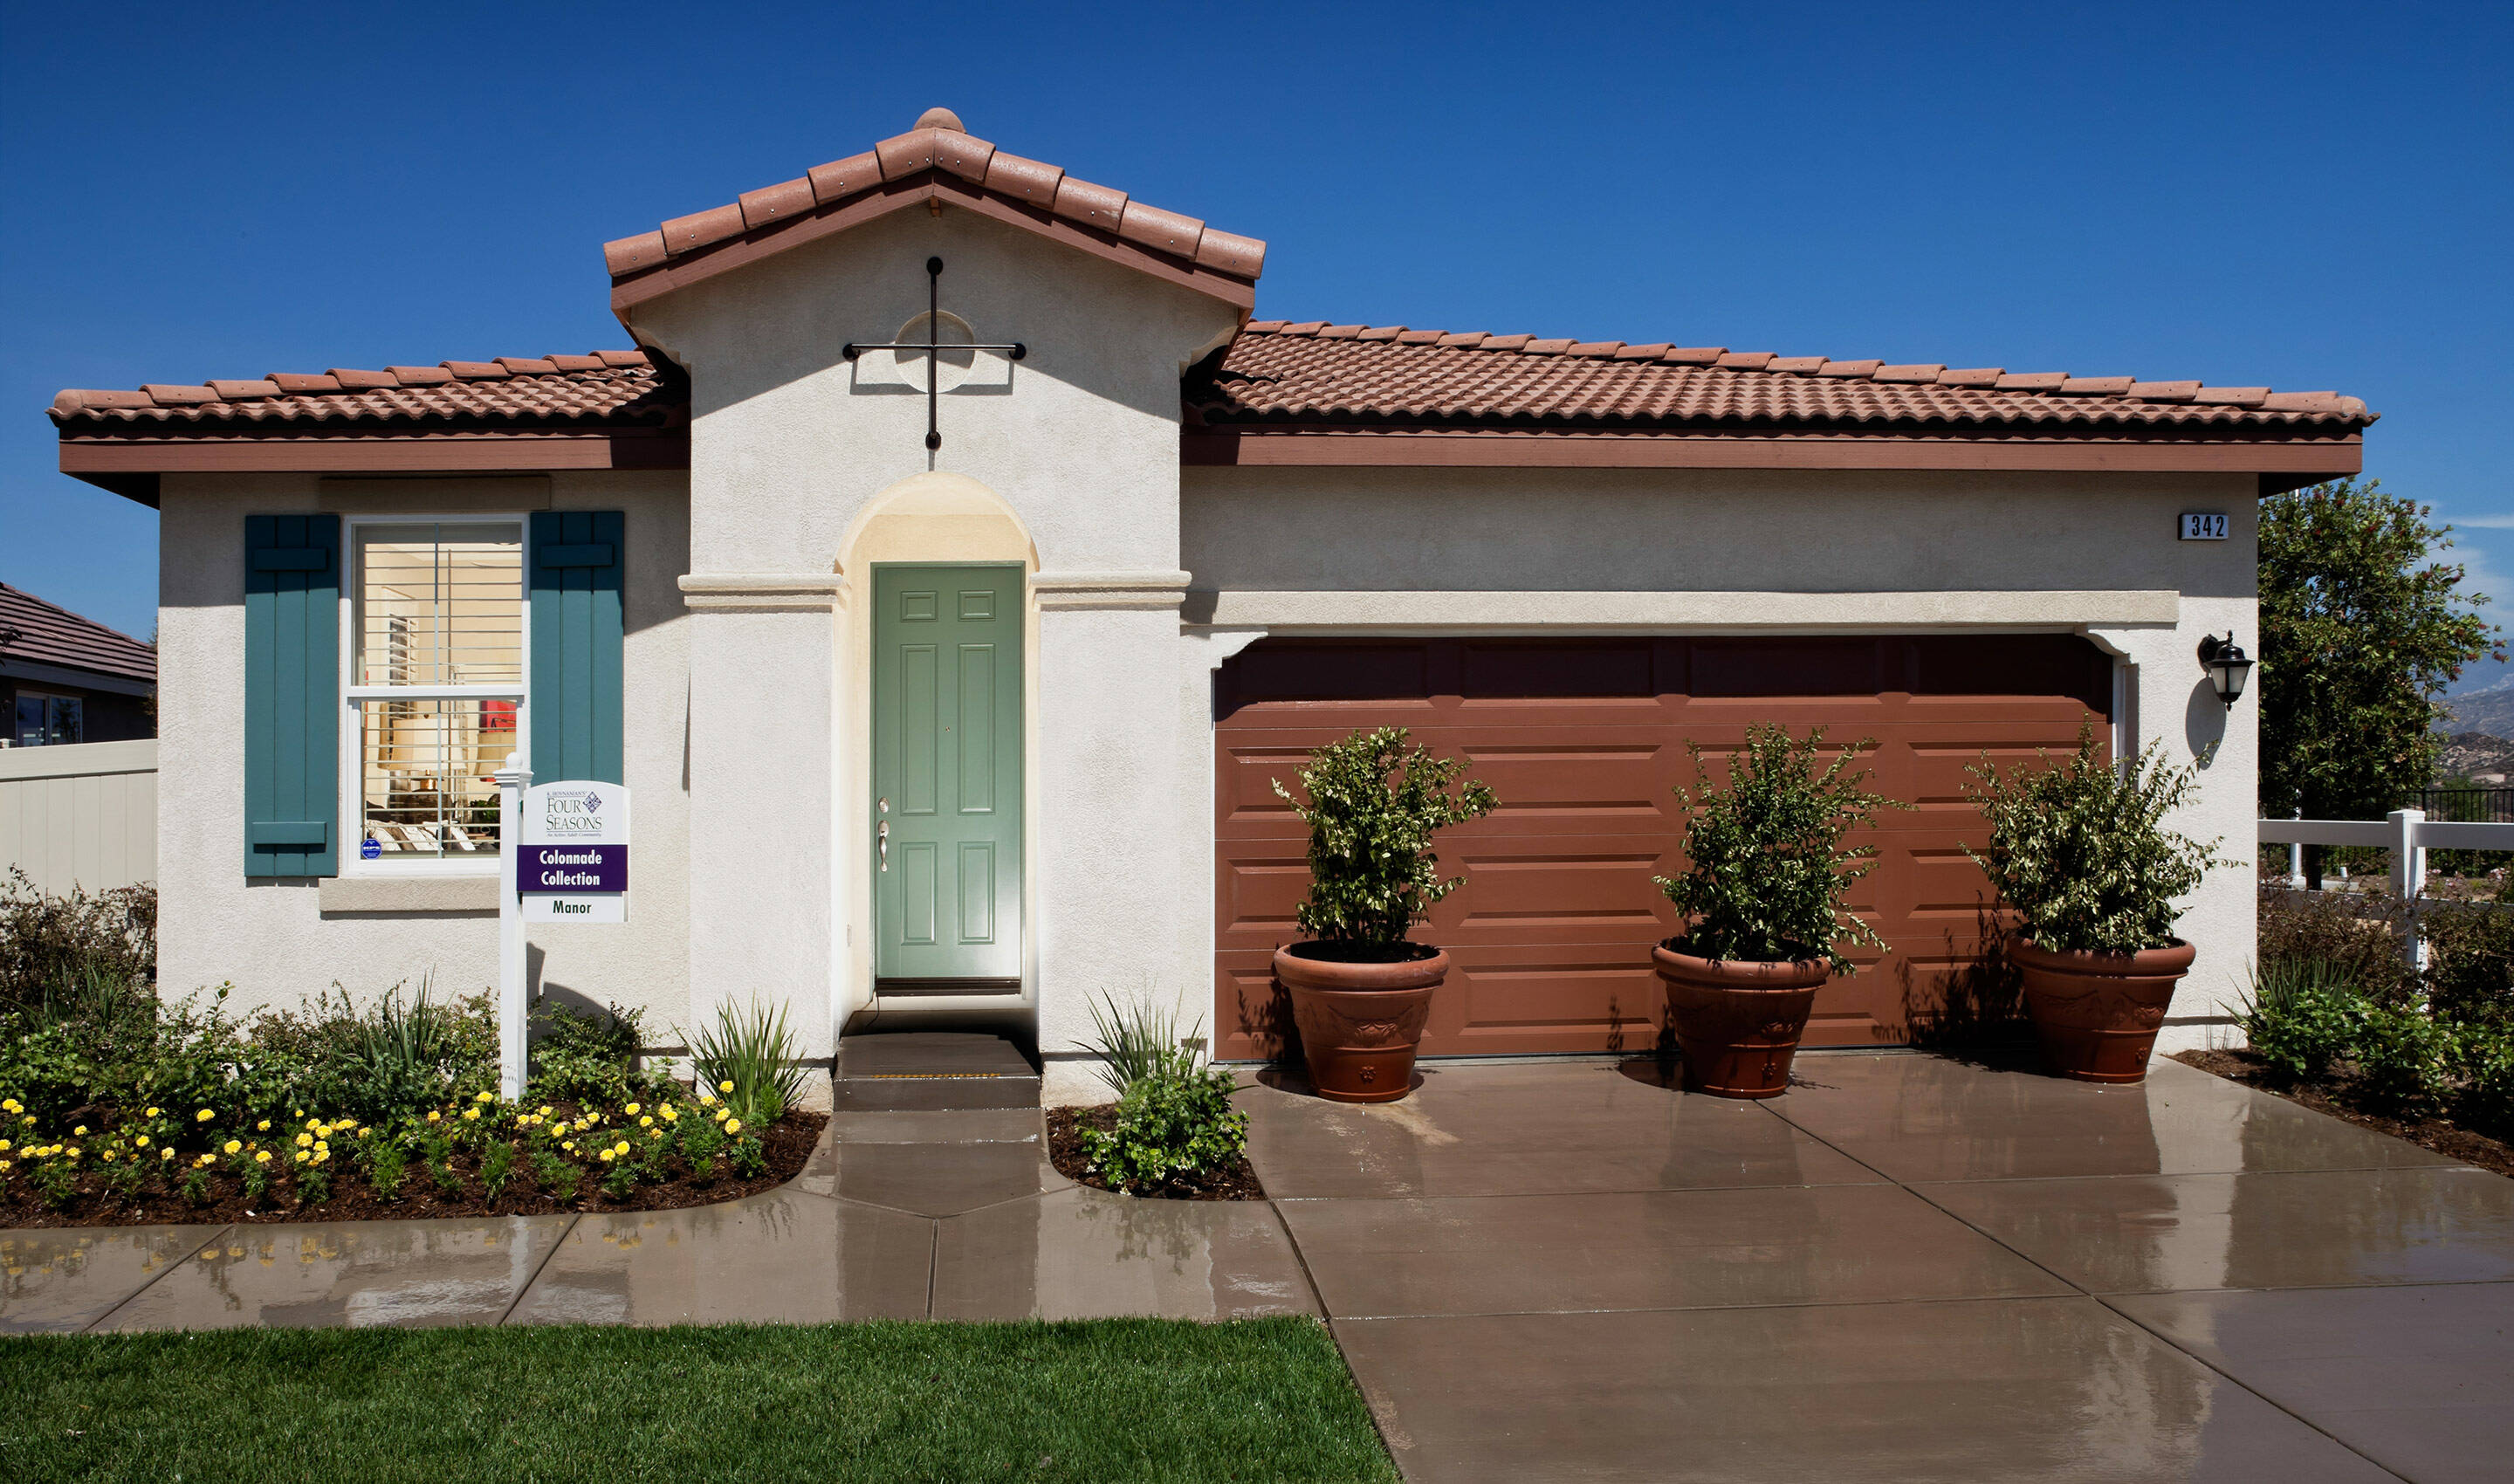 Manor Exterior - Beaumont - CA - Position 1